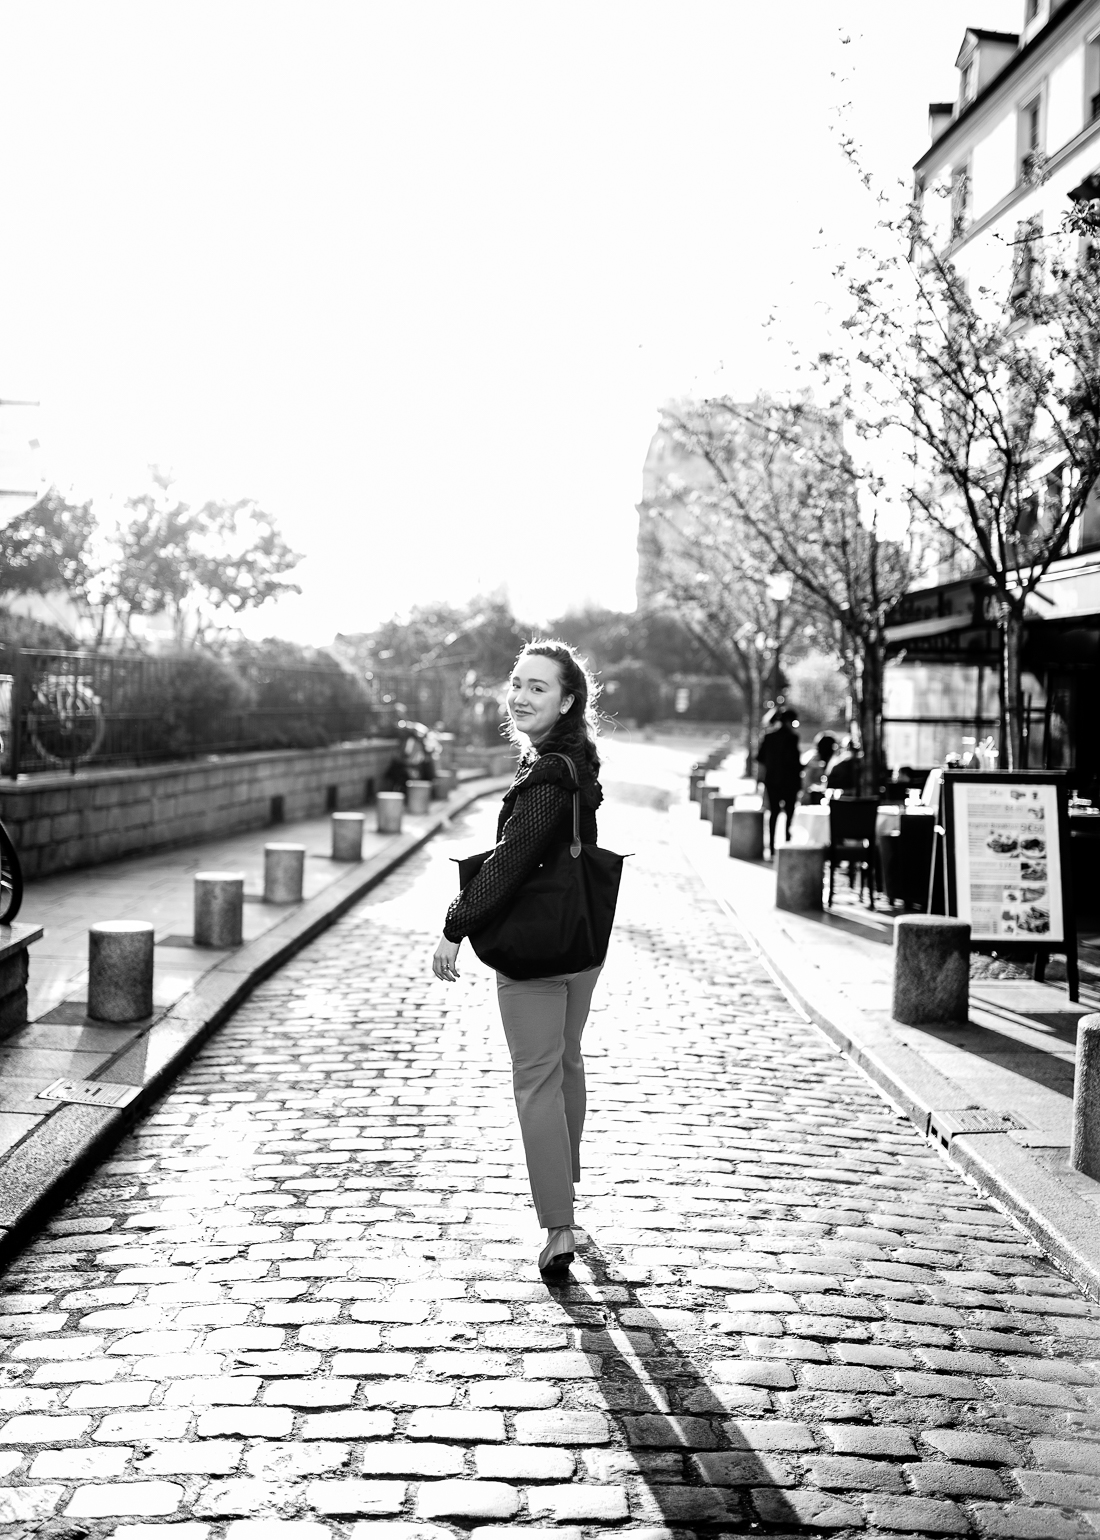 paris-portrait-photographer-katie-donnelly-ile-saint-louis-pont-neuf_012.jpg